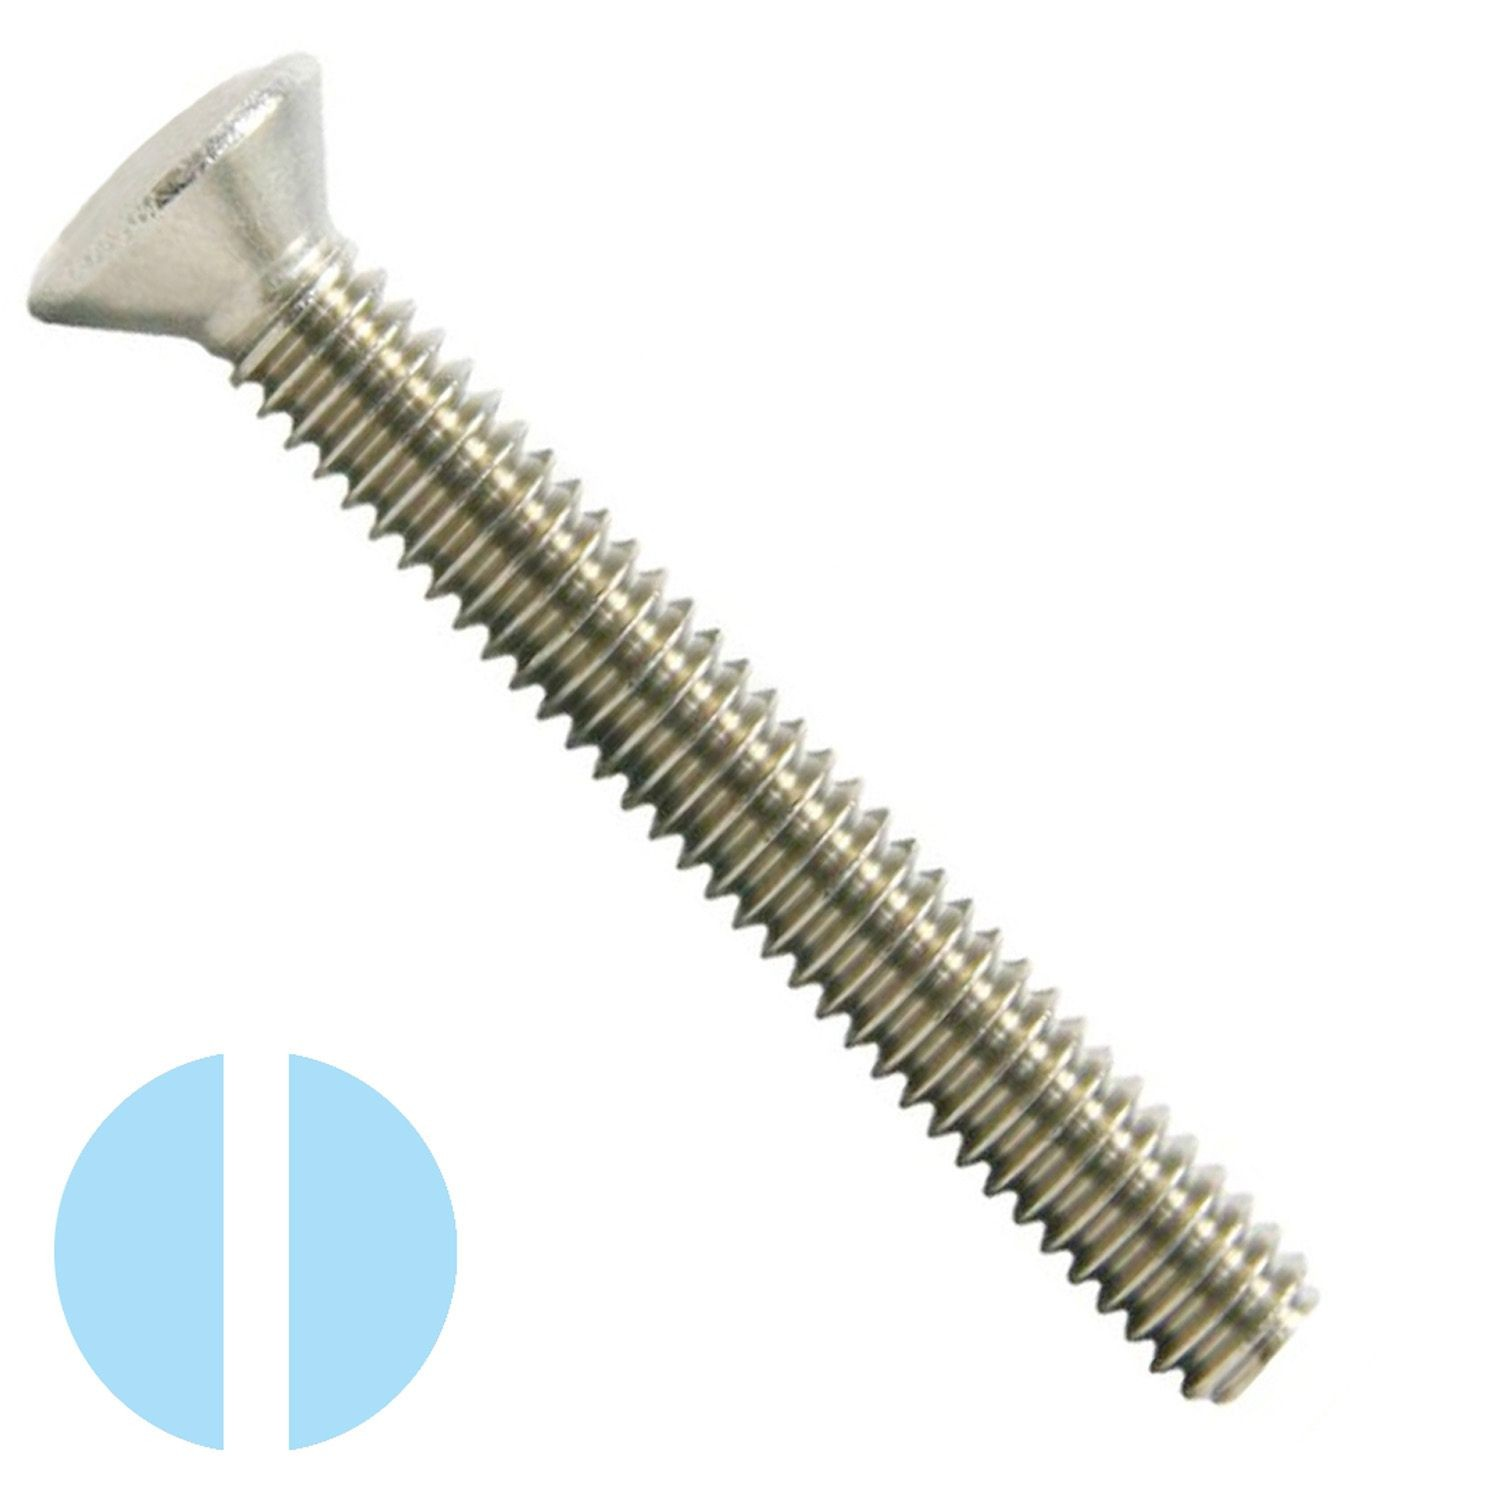 "#10-32 x 3/4"" Stainless Steel Slotted Oval Head Machine Screw 18-8"